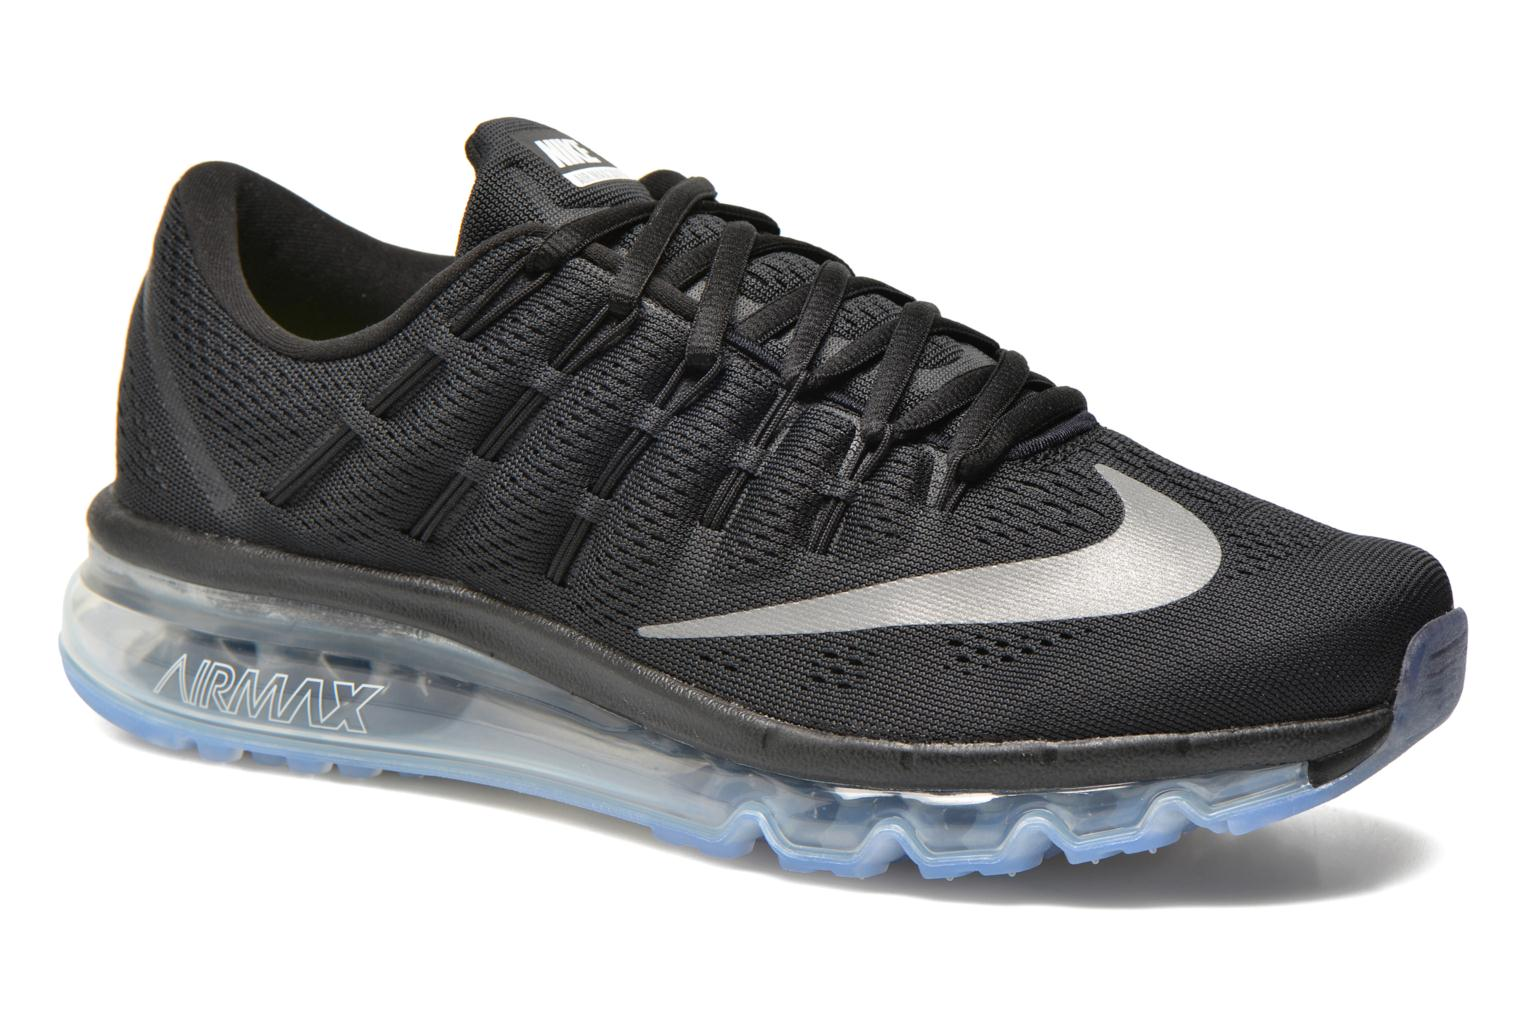 Nike Air Max 2016 Chica